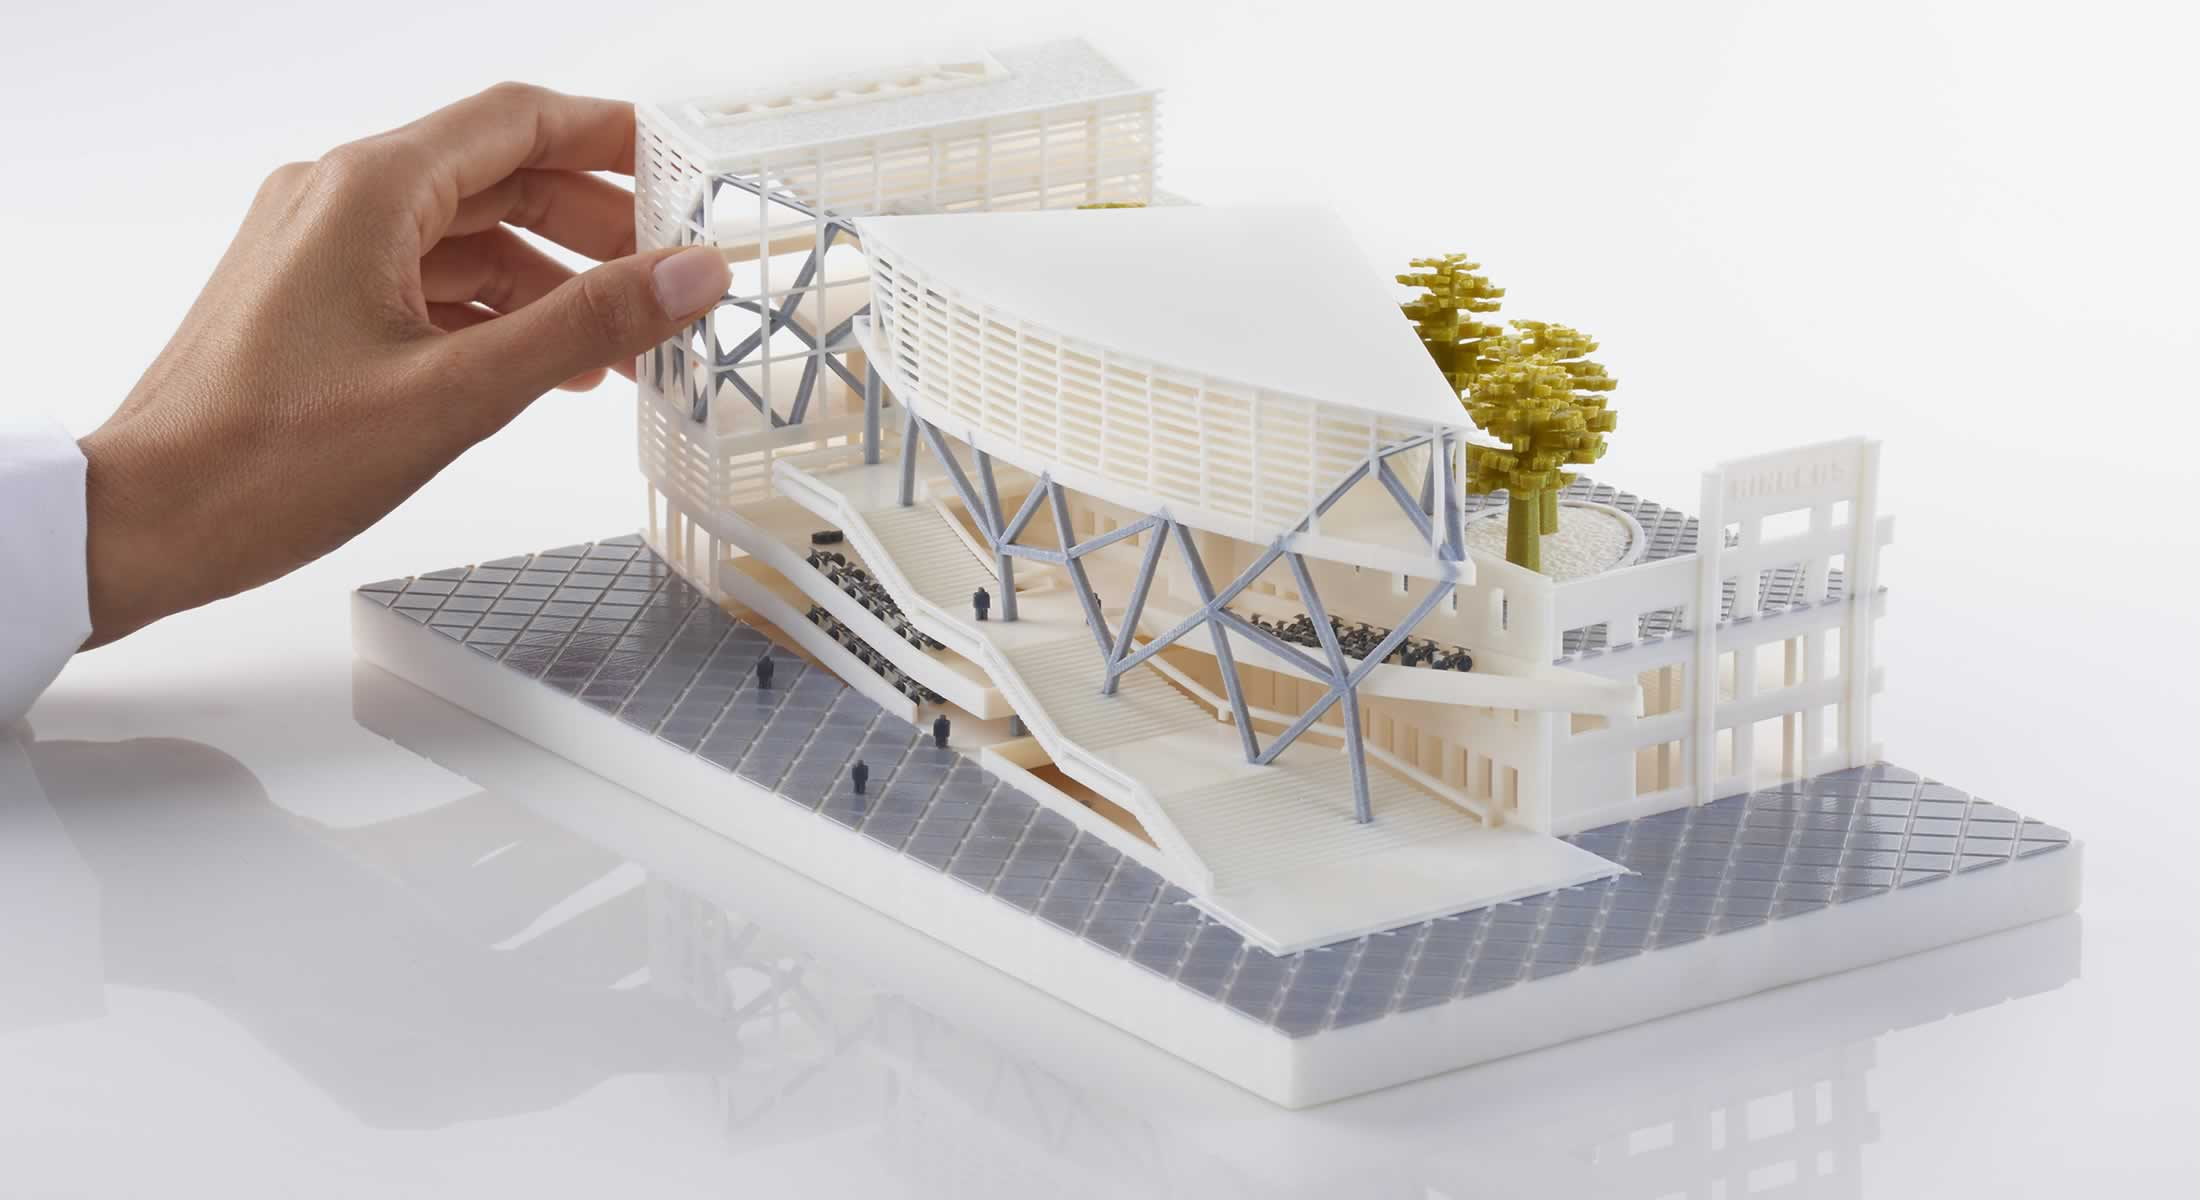 Javelin to introduce 3D printing to architectural firms in upcoming